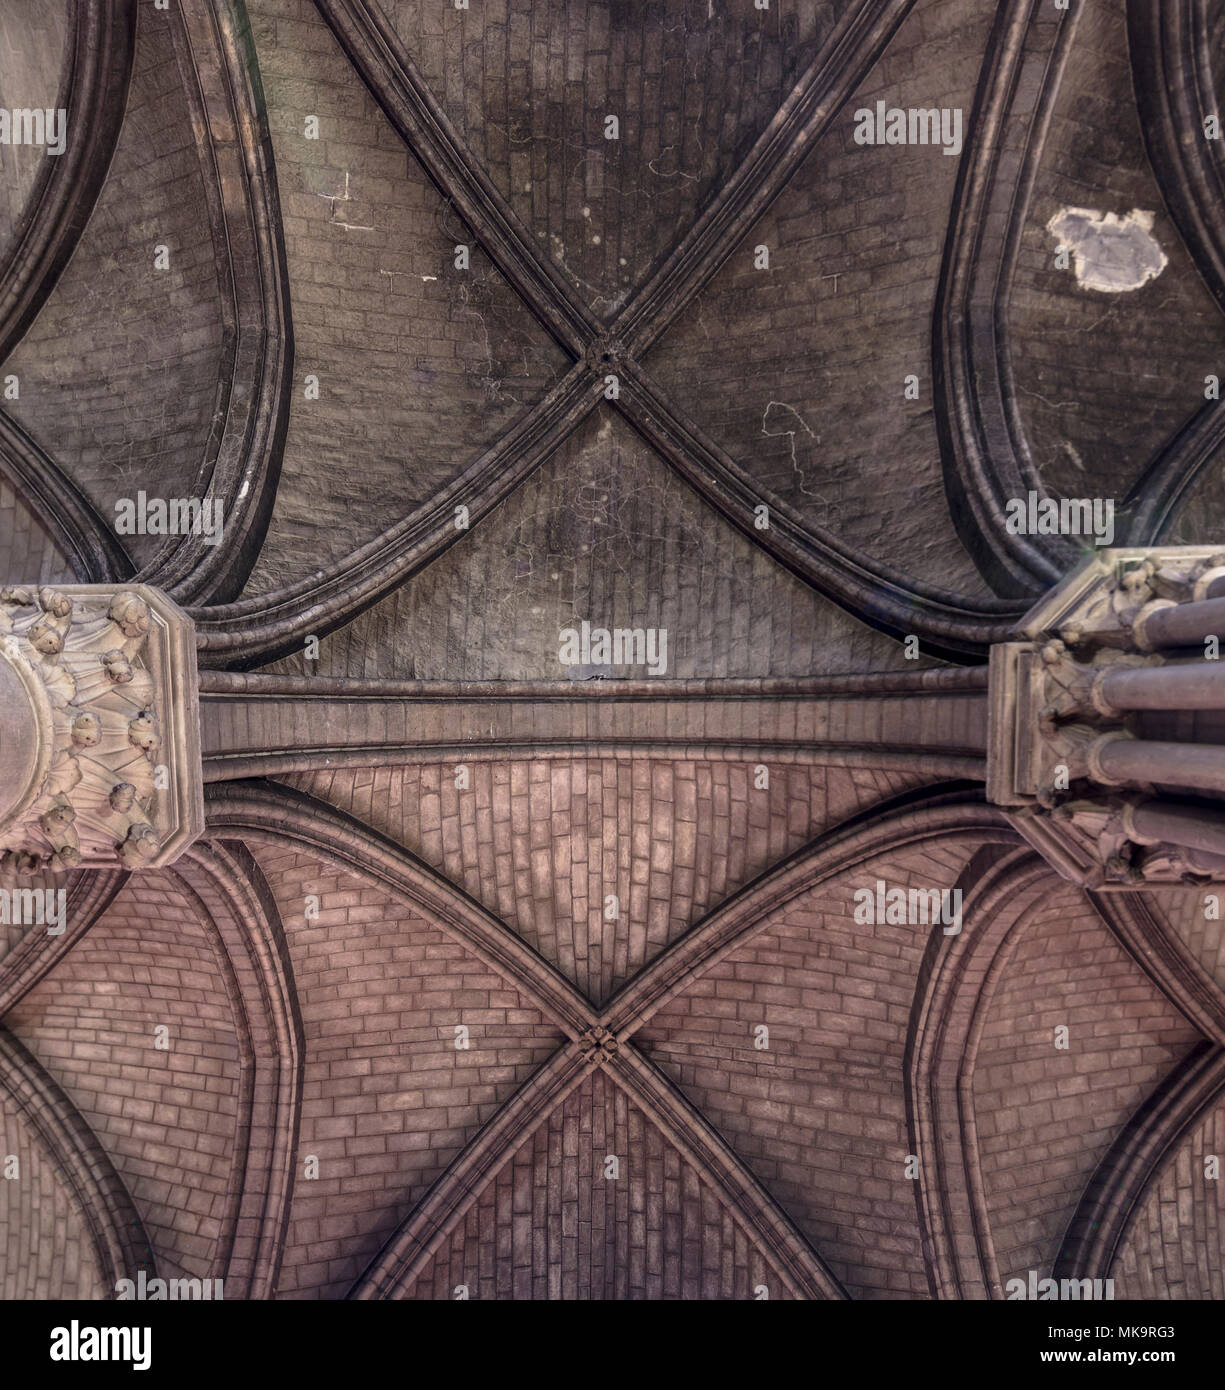 ribbed Gothic vaulting, cathedral of Notre-Dame de Paris , France - Stock Image